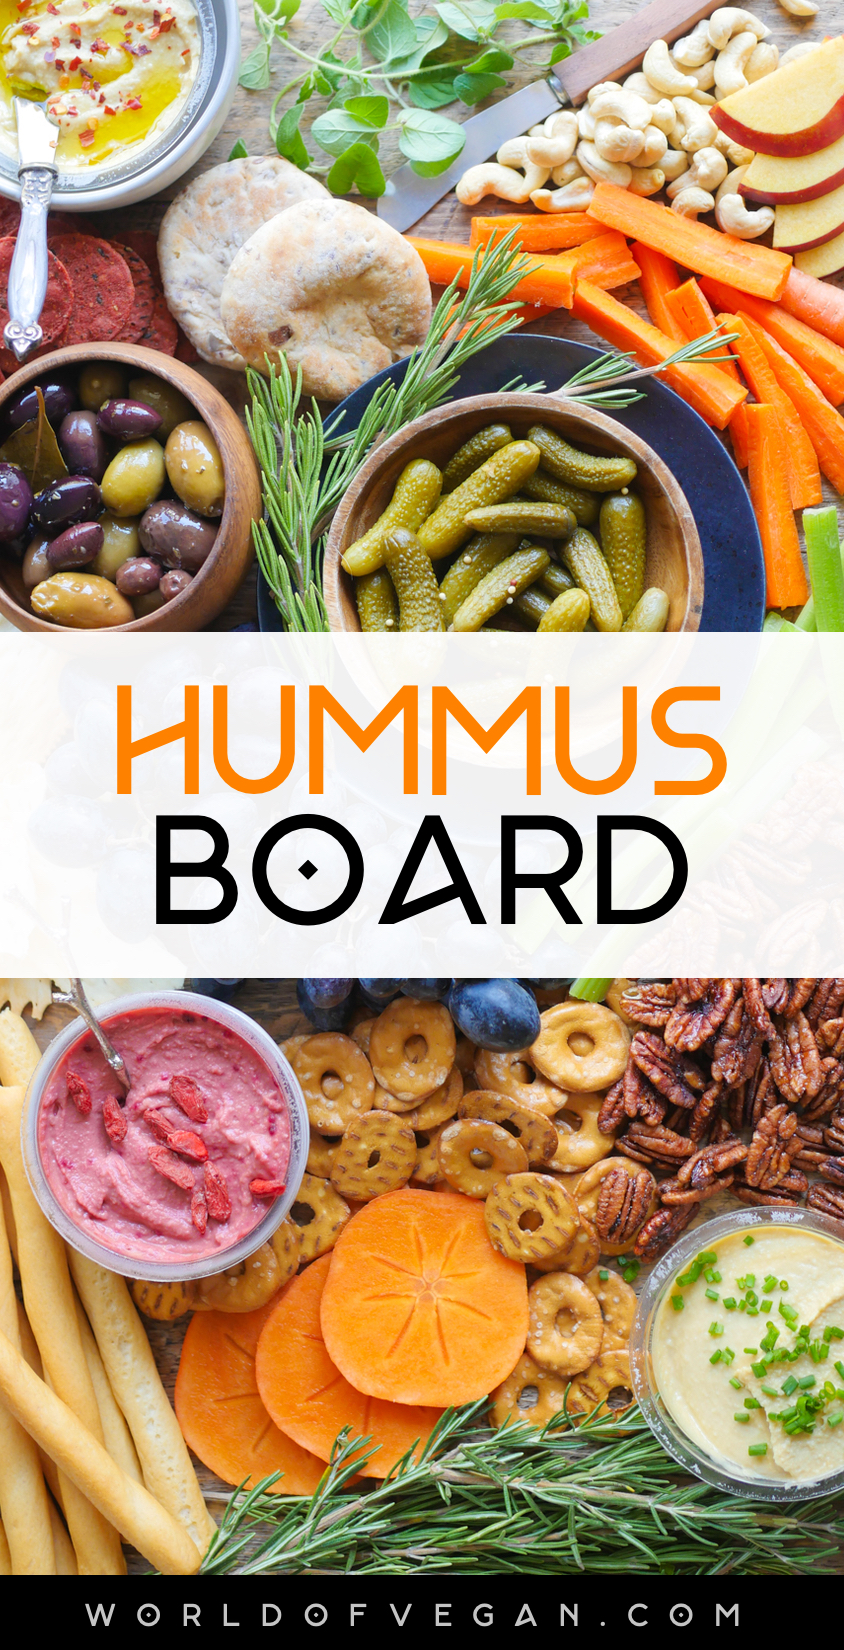 Hummus Board | World of Vegan